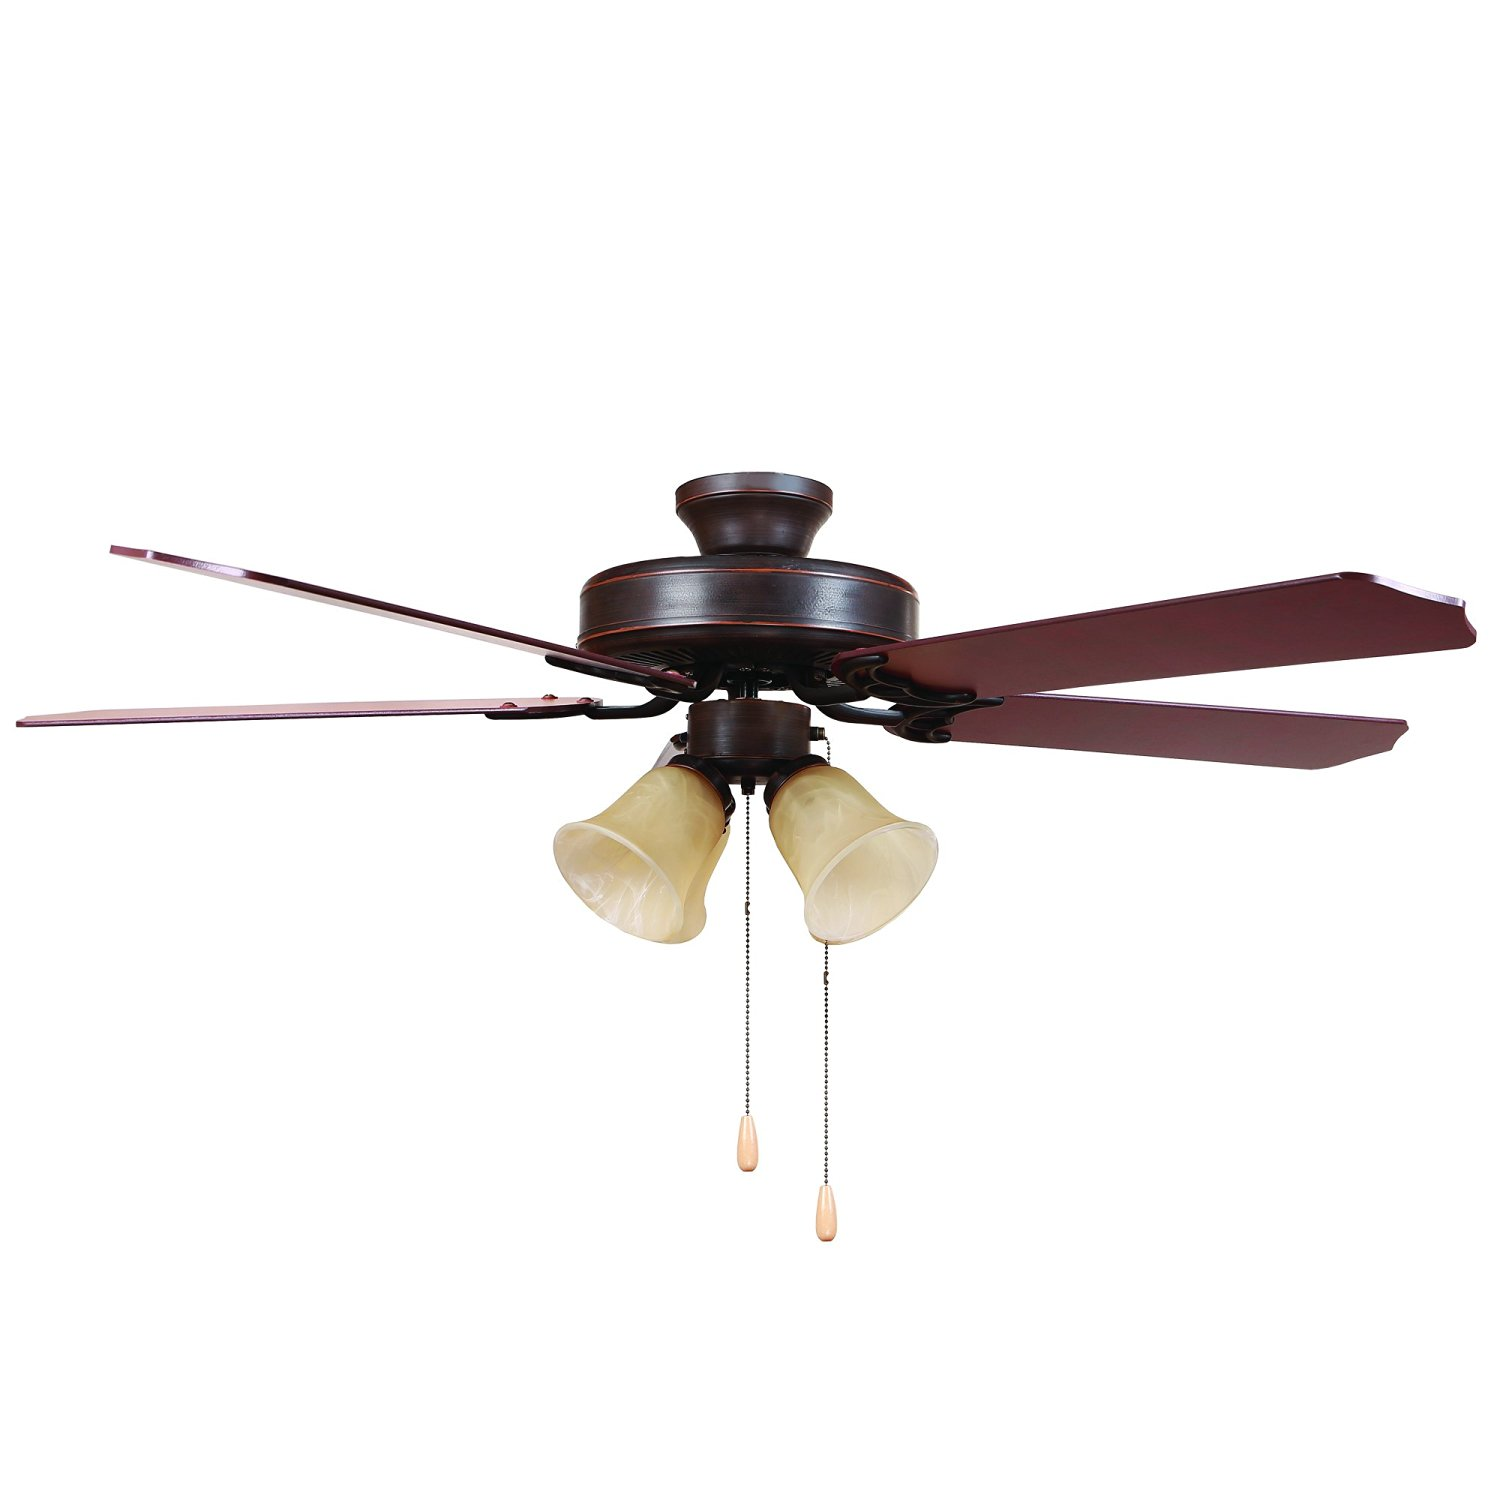 """Yosemite Home Decor WESTFIELD-ORB2-4TS Ceiling Fan with 4 Light, 52"""", Oil Rubbed Bronze Finish"""